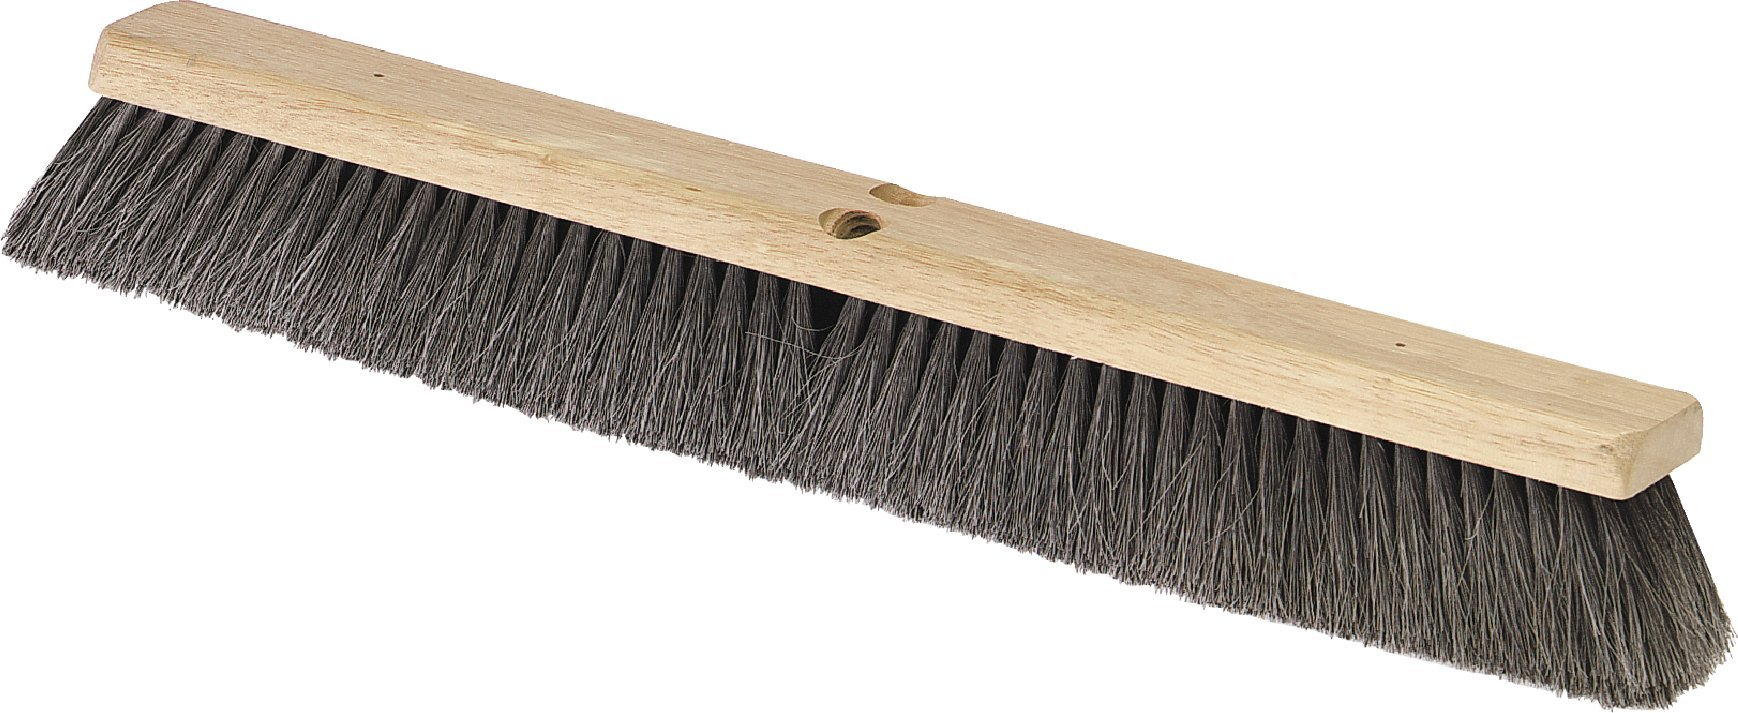 Carlisle 364343603 Hardwood Block Fine Floor Sweep, Pure Horsehair Bristles, 36'' Length, Black by Carlisle